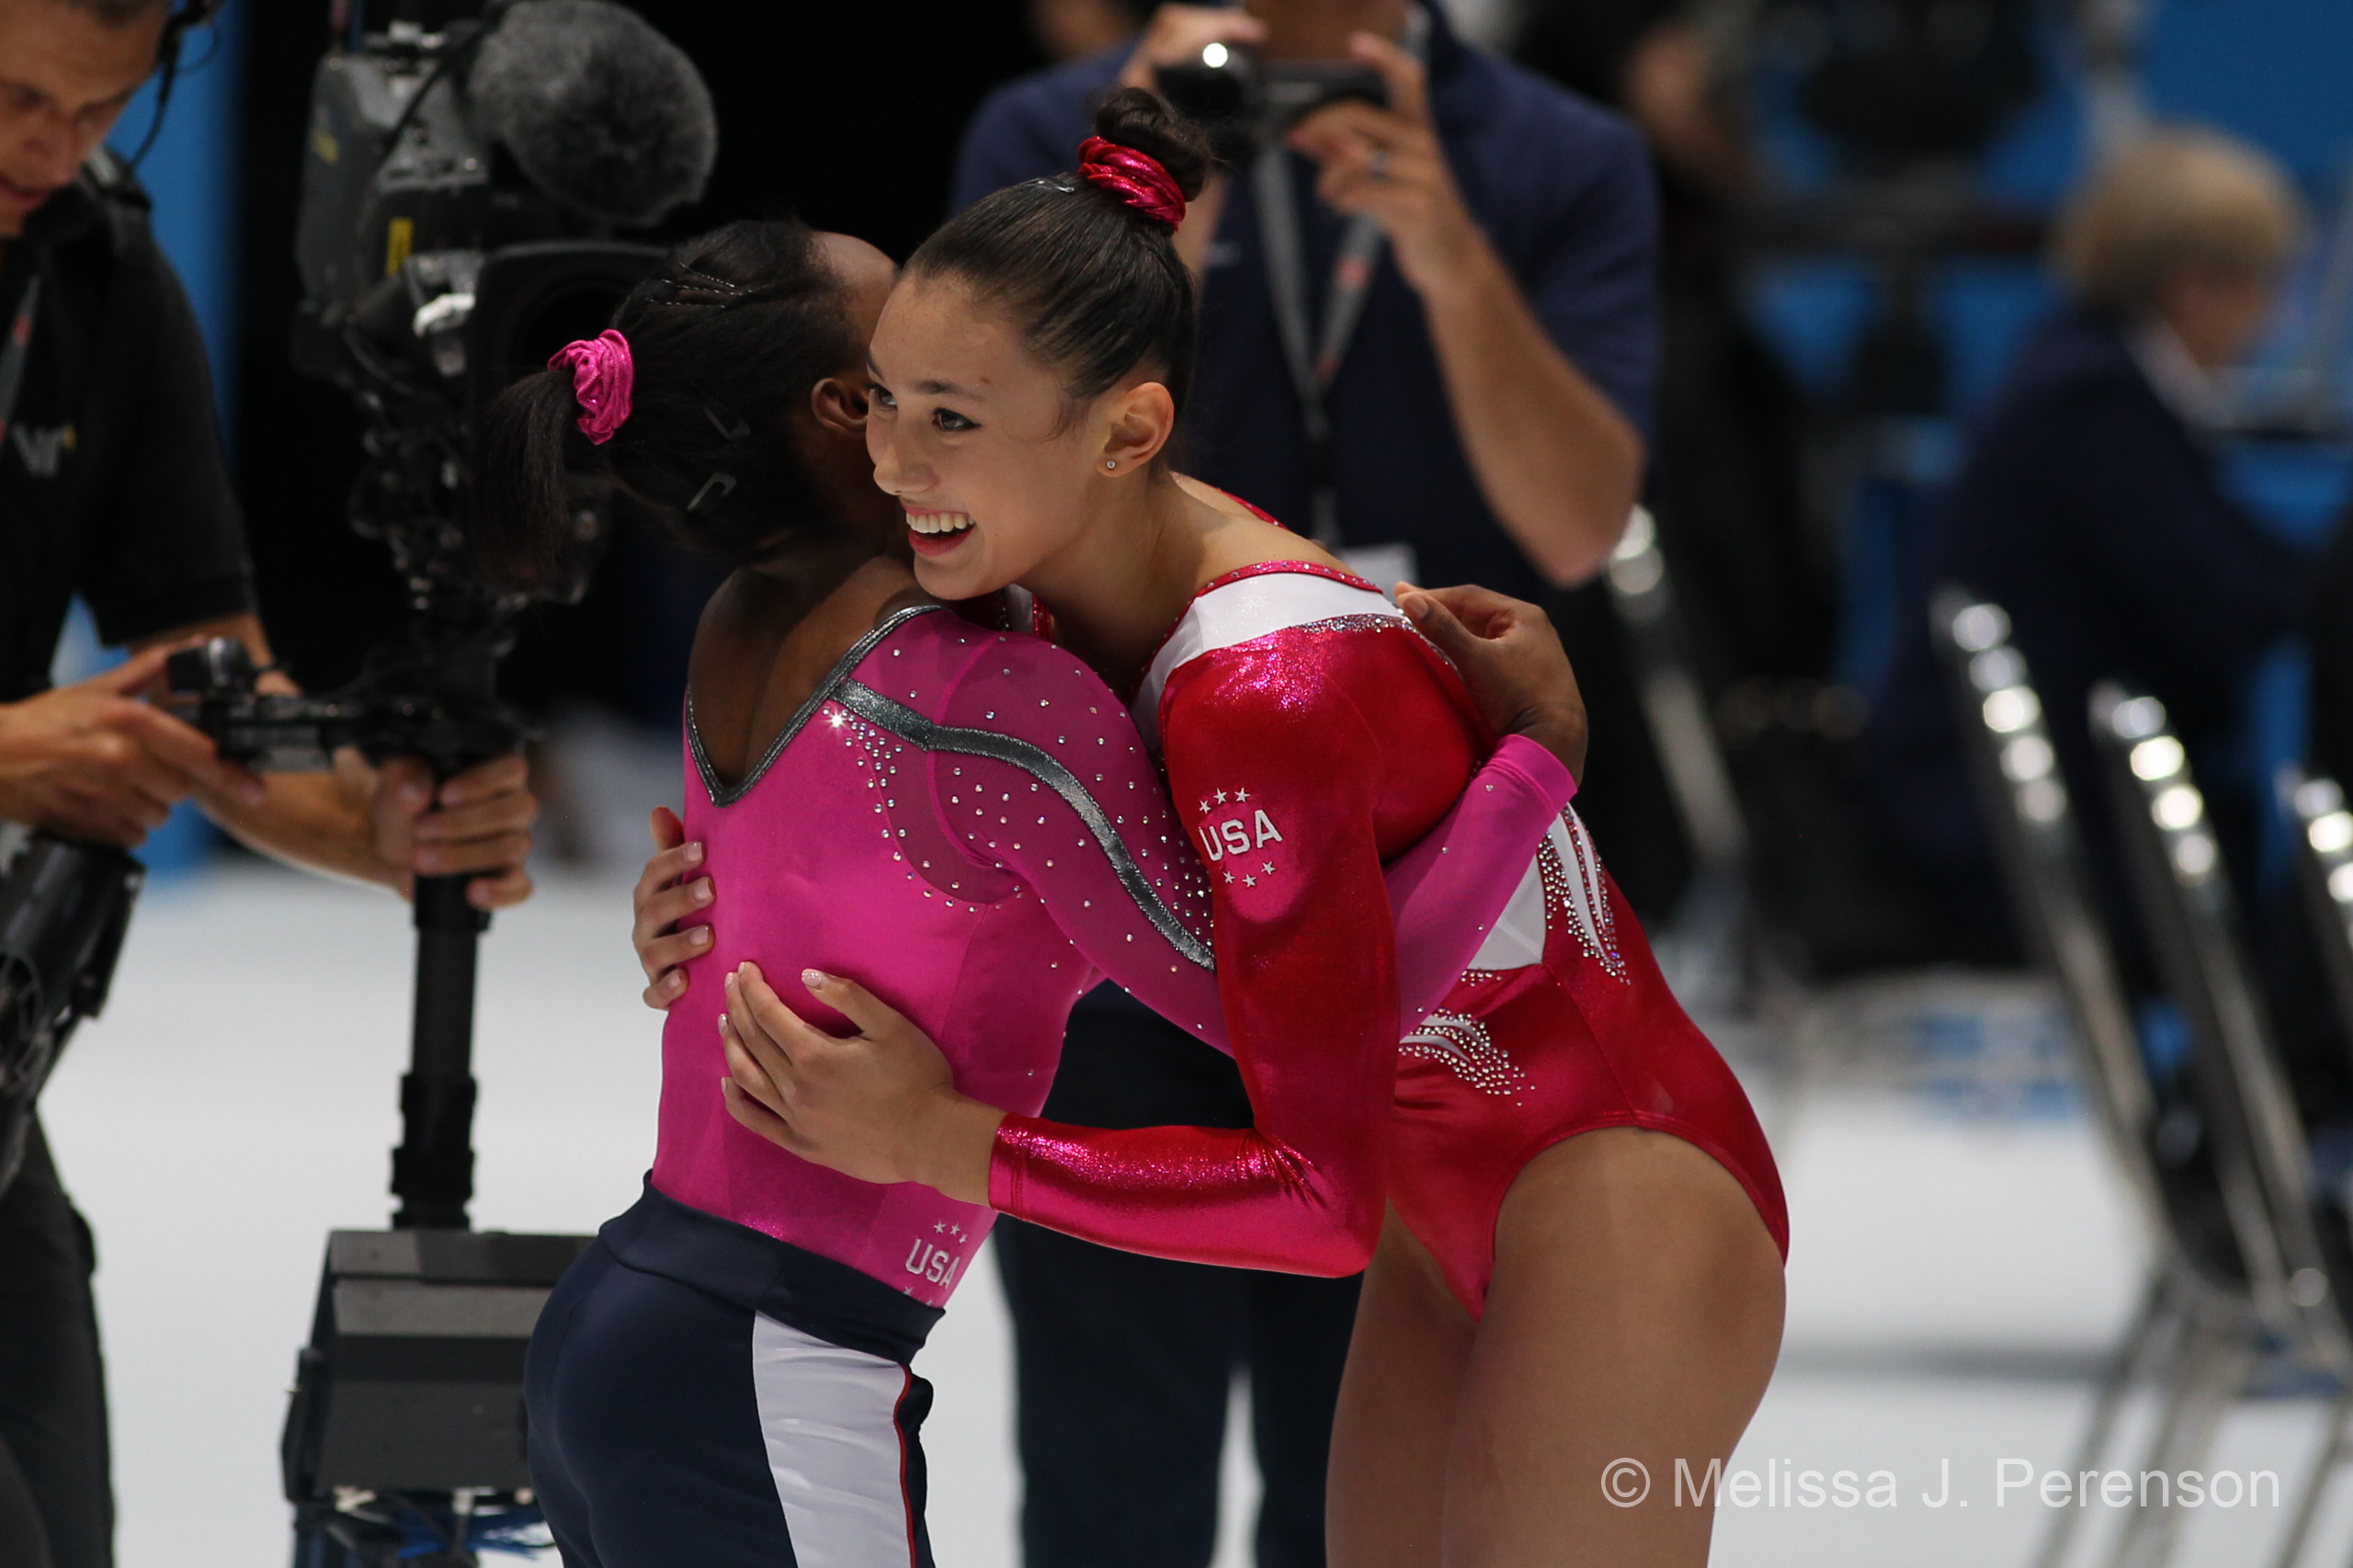 Team USA Makes History in Antwerp - Gymnastikesimone biles